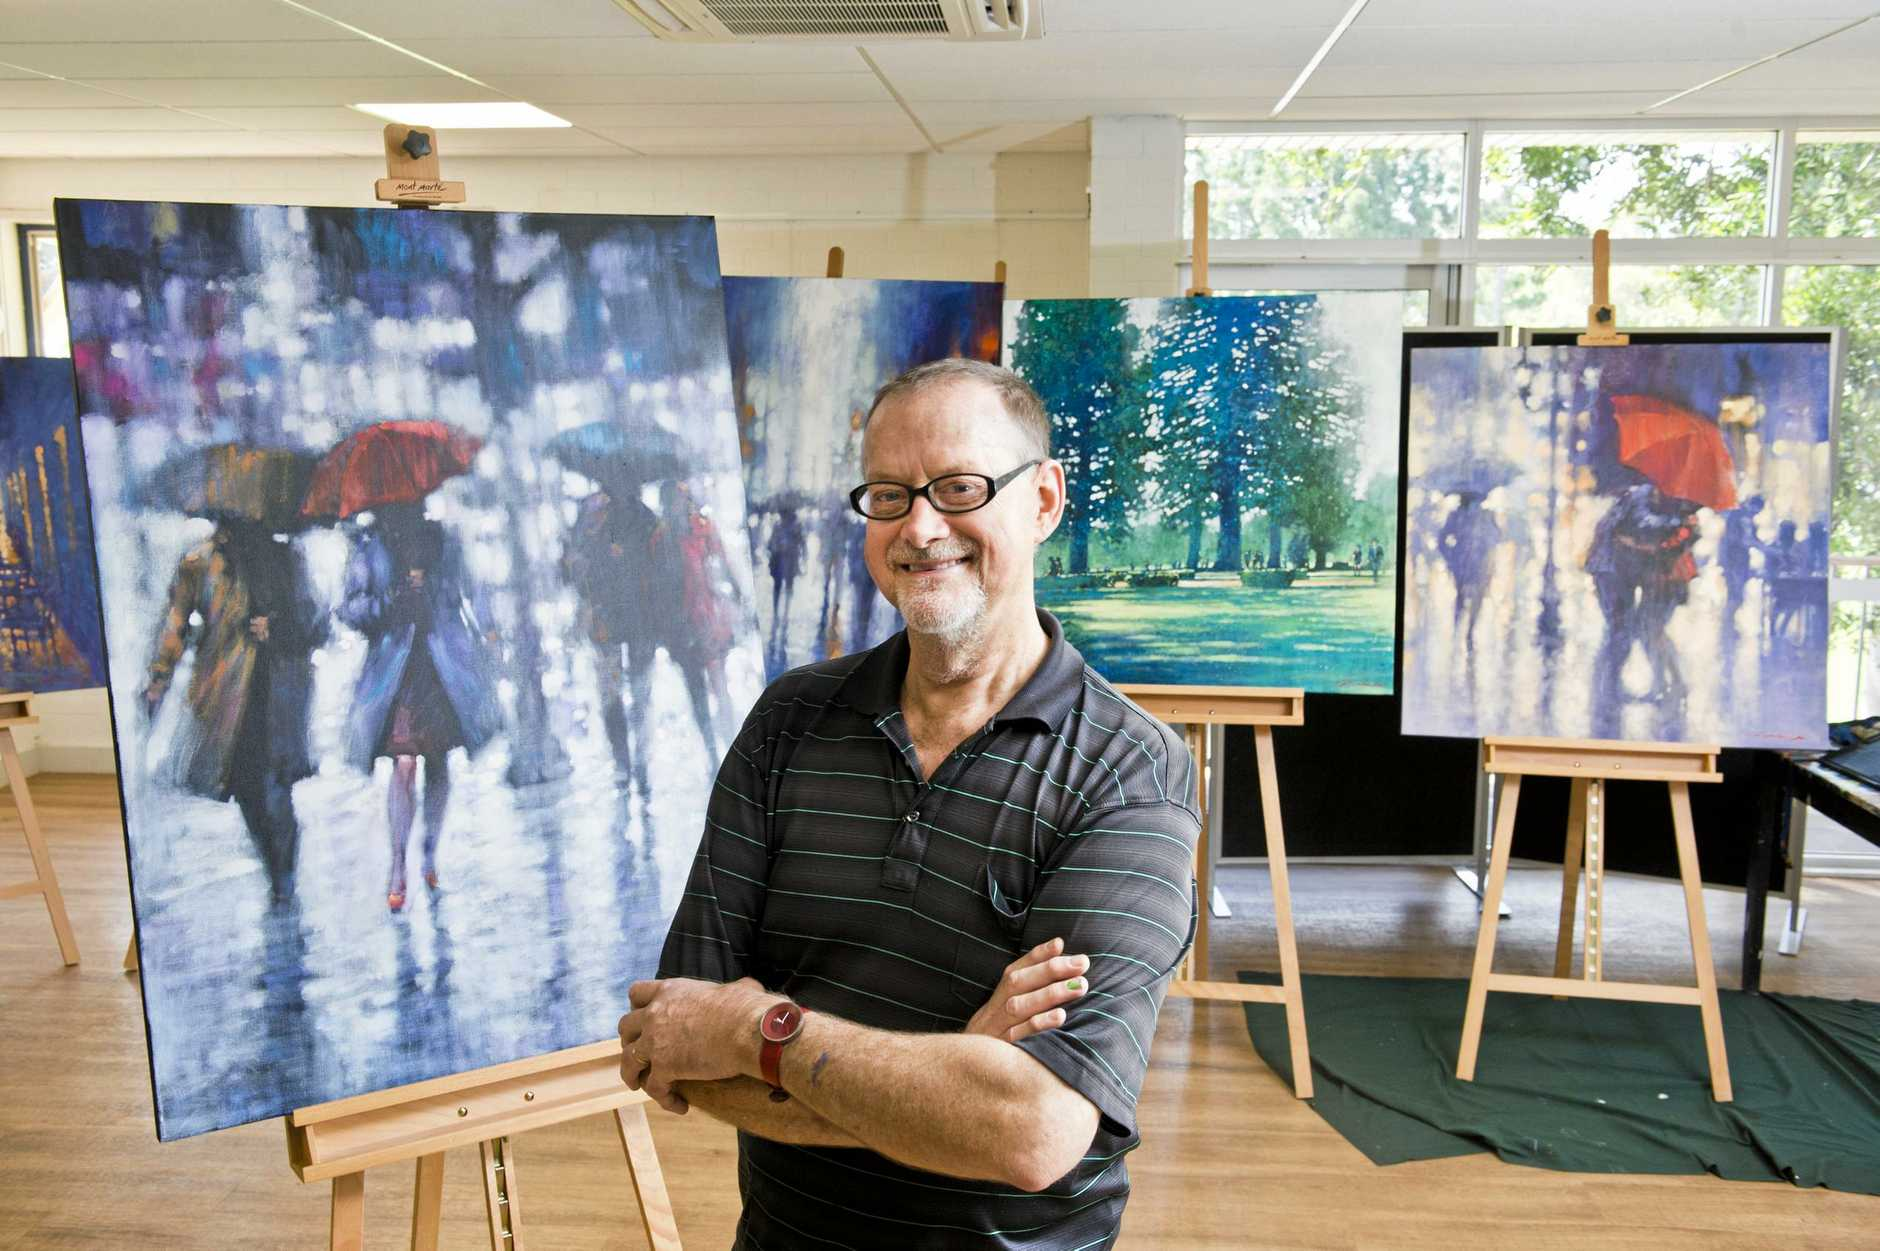 ART SHOW: Brisbane artist David Hinchcliffe is the feature artist for the 2018 Grammar Art Show later this month.